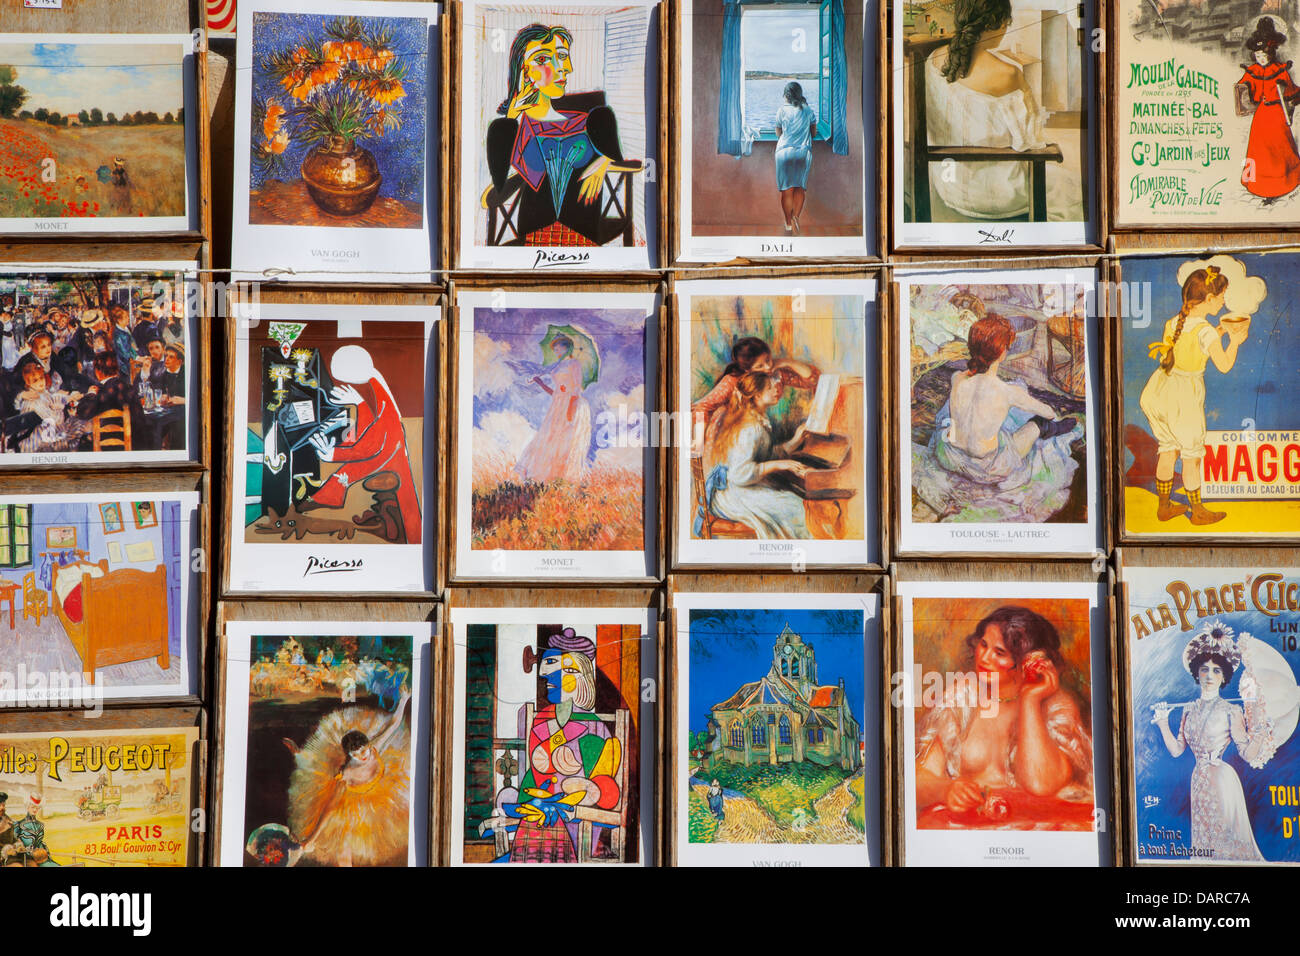 Colorful display of historic artwork made famous in and around Paris - Montmartre, Paris France - Stock Image